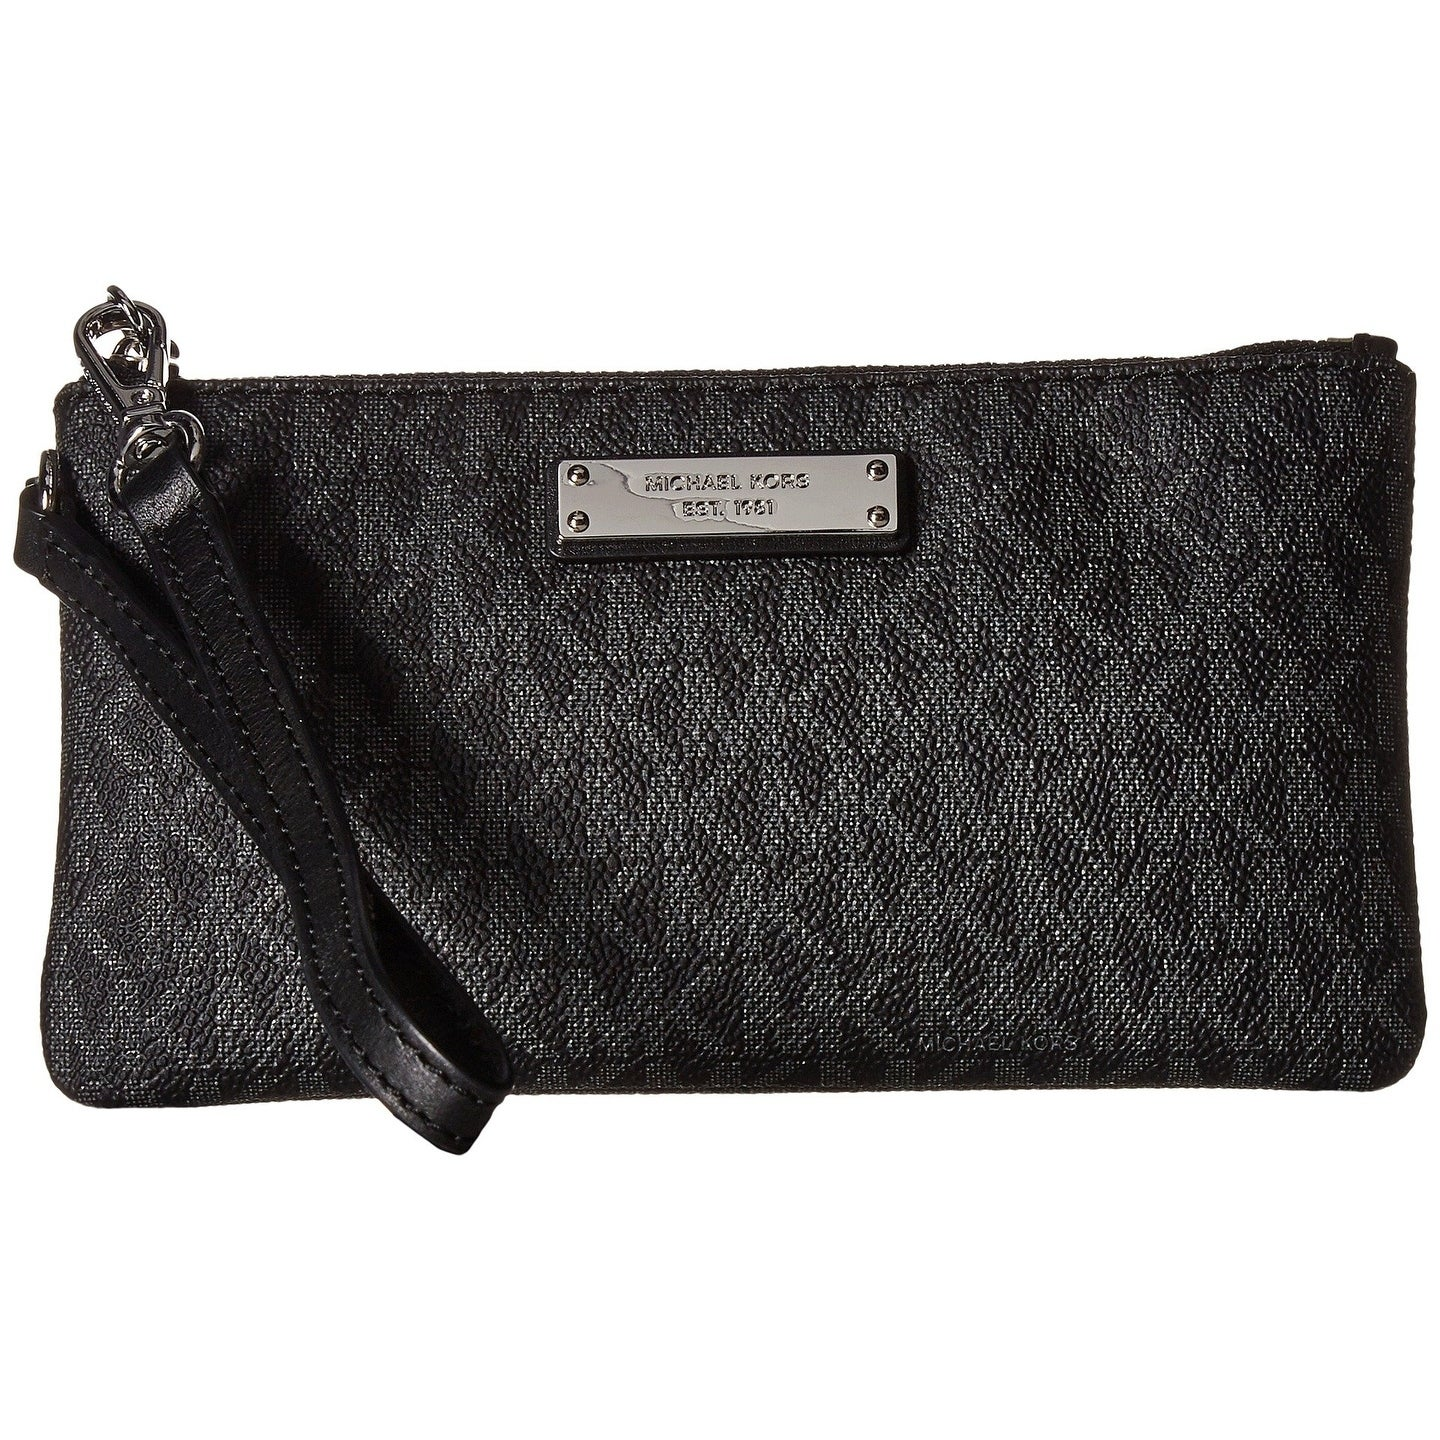 a2118aac8458 Buy Michael Kors Women's Wallets Online at Overstock | Our Best Wallets  Deals